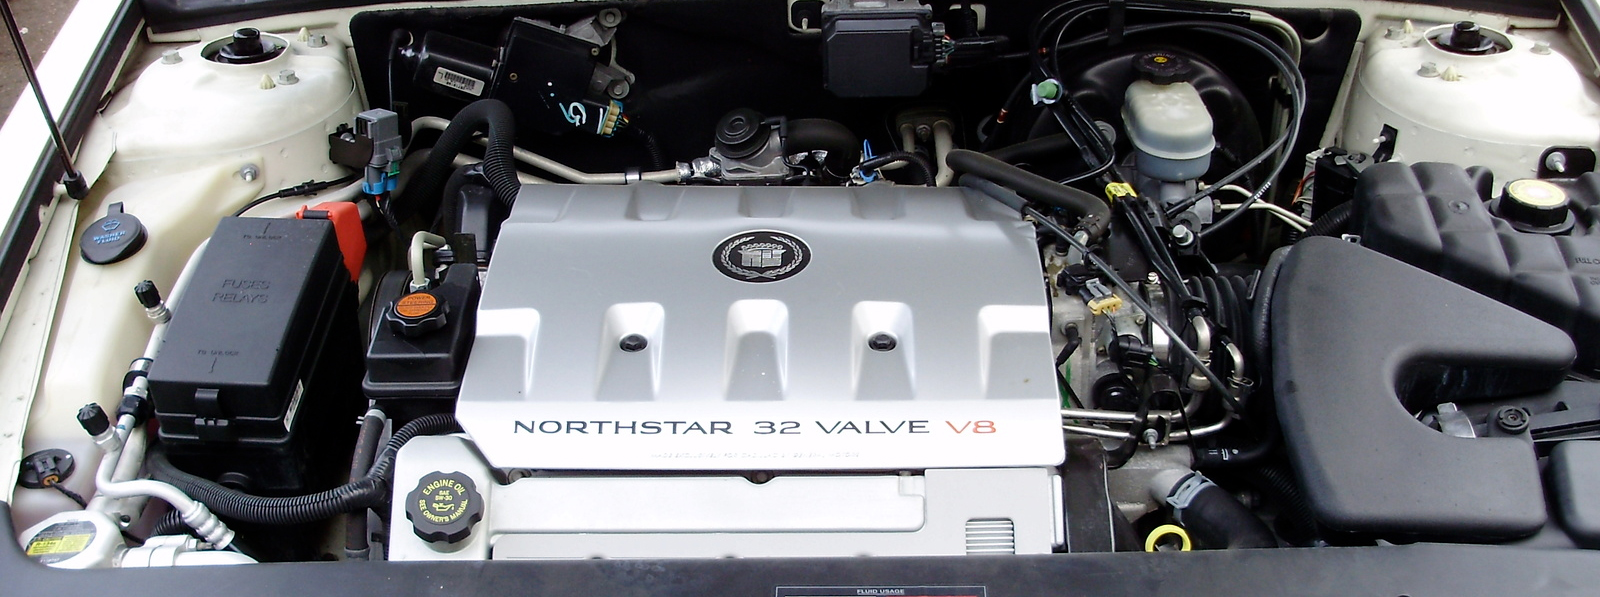 cadillac-northstar-engine-repair.jpg